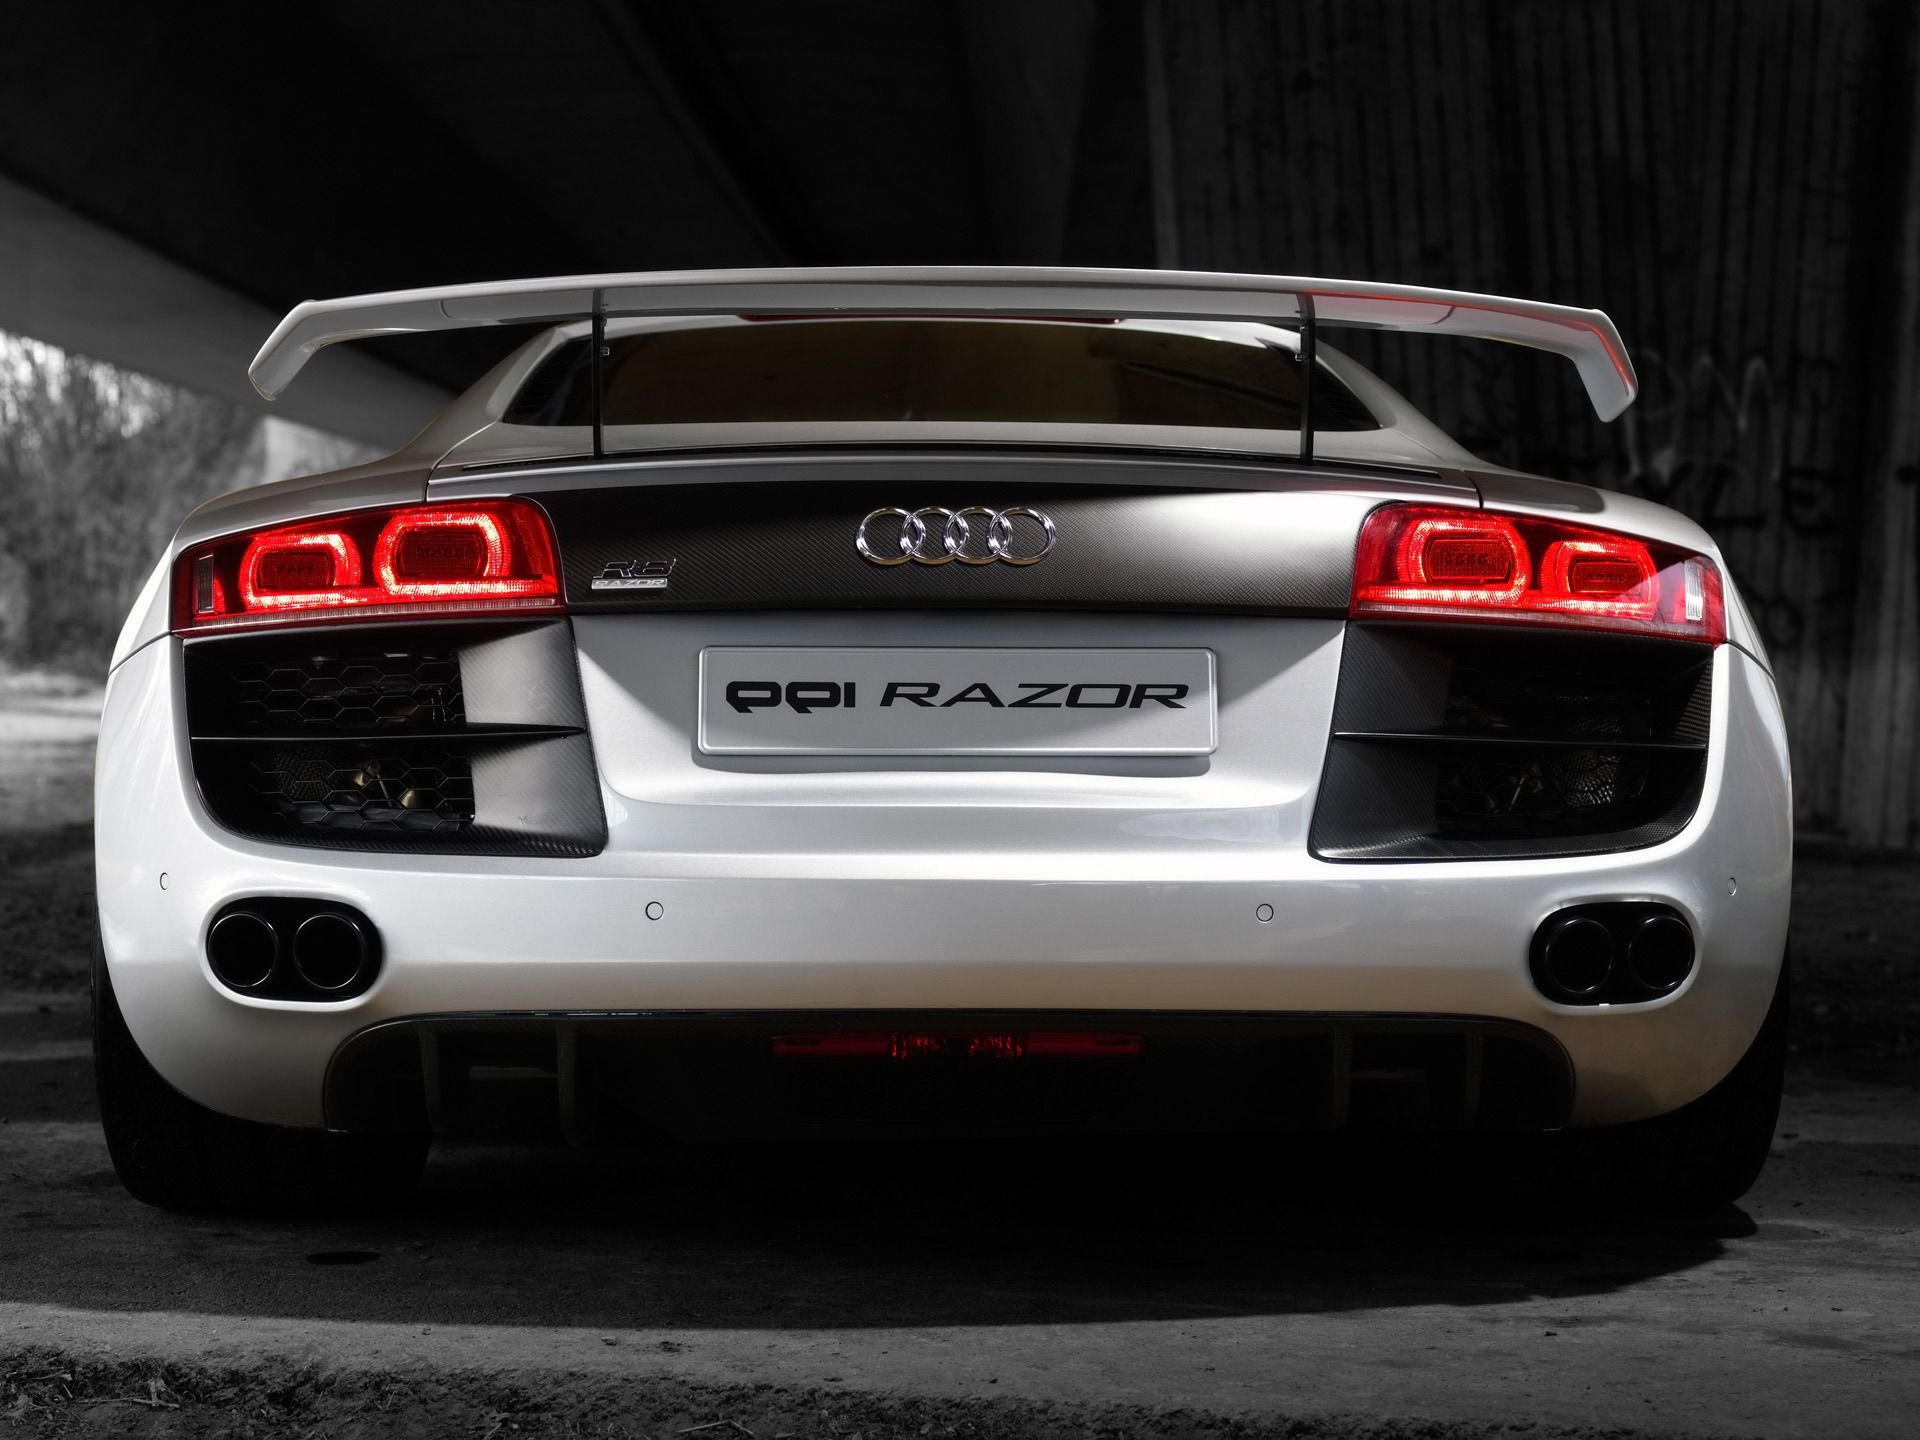 Audi car hd wallpaper for desktop high quality backgrounds of with 2048 1360 audi car